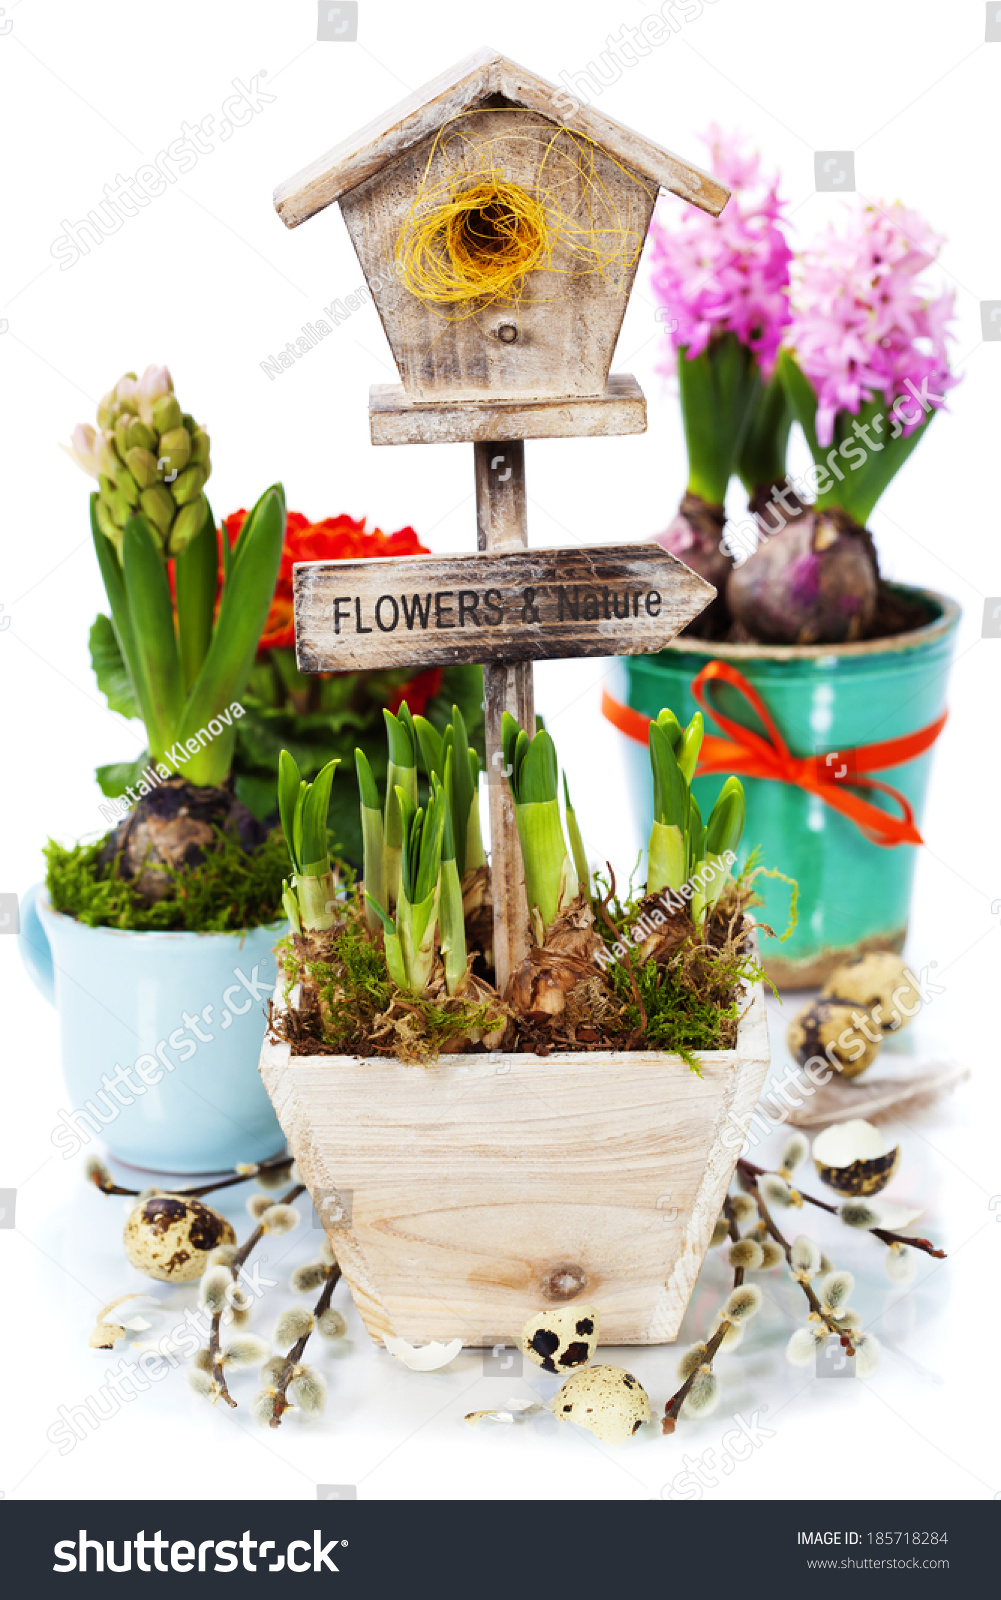 Potted spring flowers little birdhouse over stock photo royalty potted spring flowers and little birdhouse over white spring easter and garden concept mightylinksfo